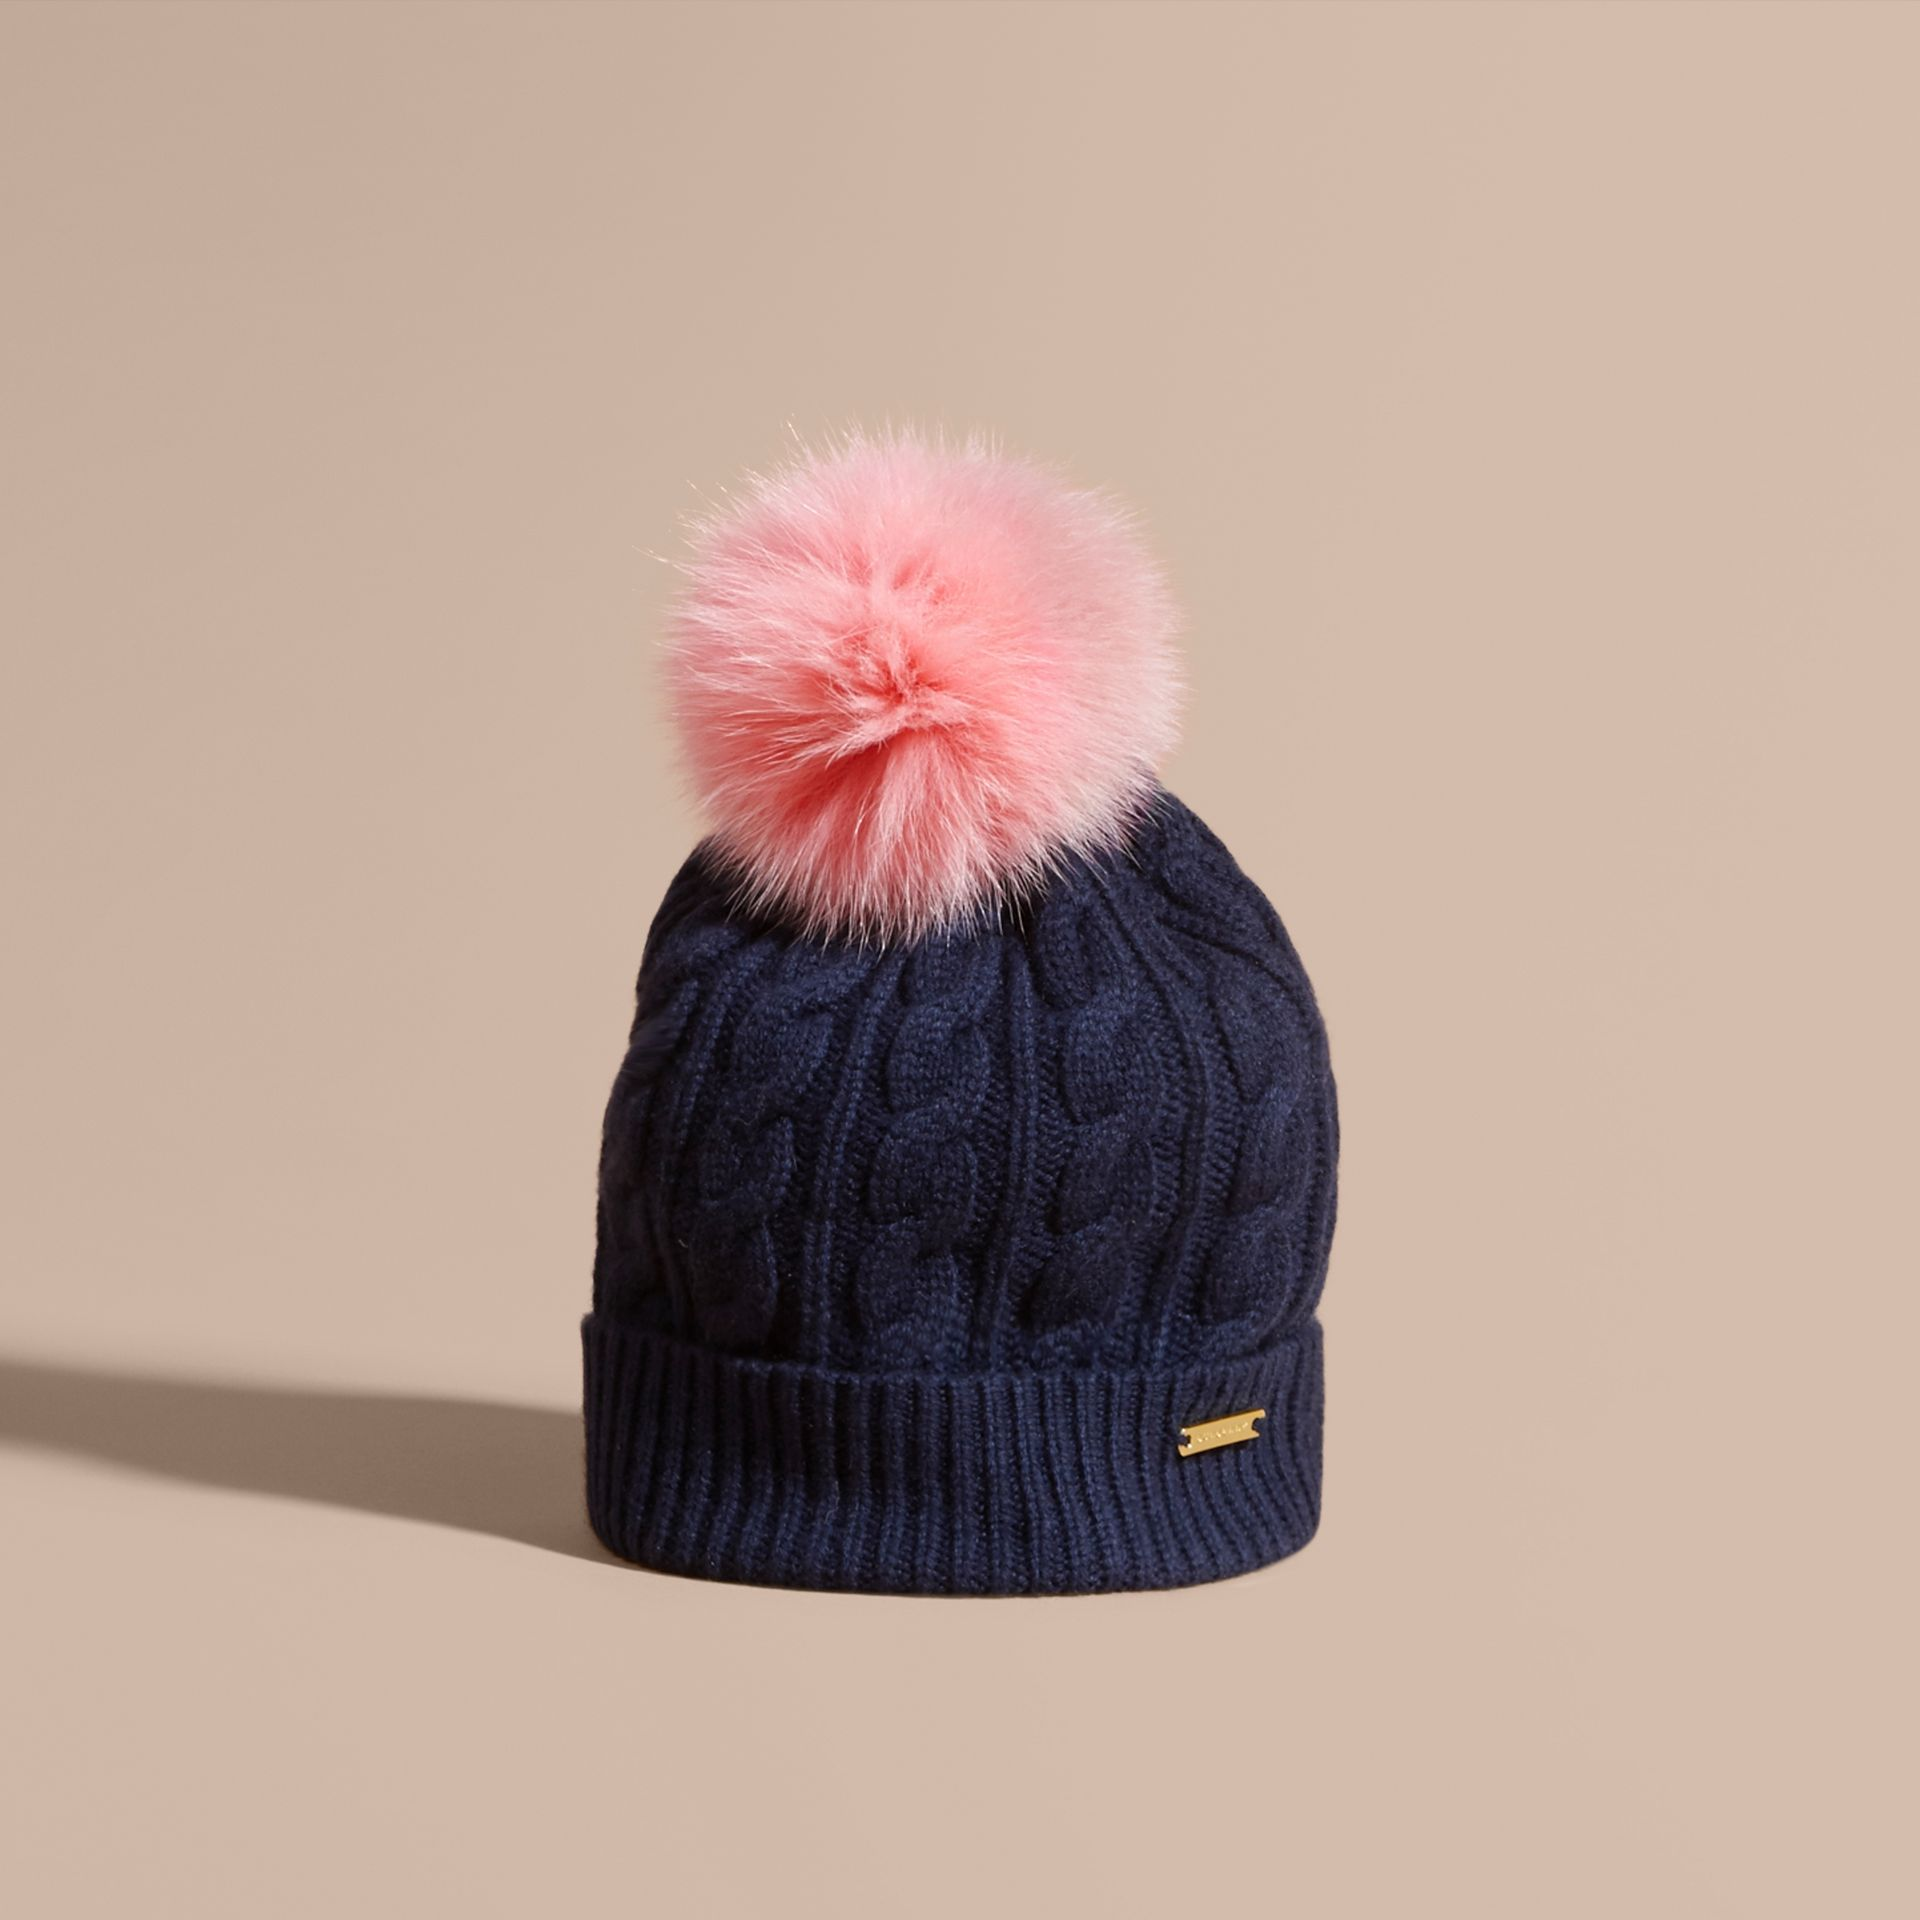 Wool Cashmere Cable Knit Beanie with Two-tone Fur Pom-Pom Navy/rose Pink - gallery image 1